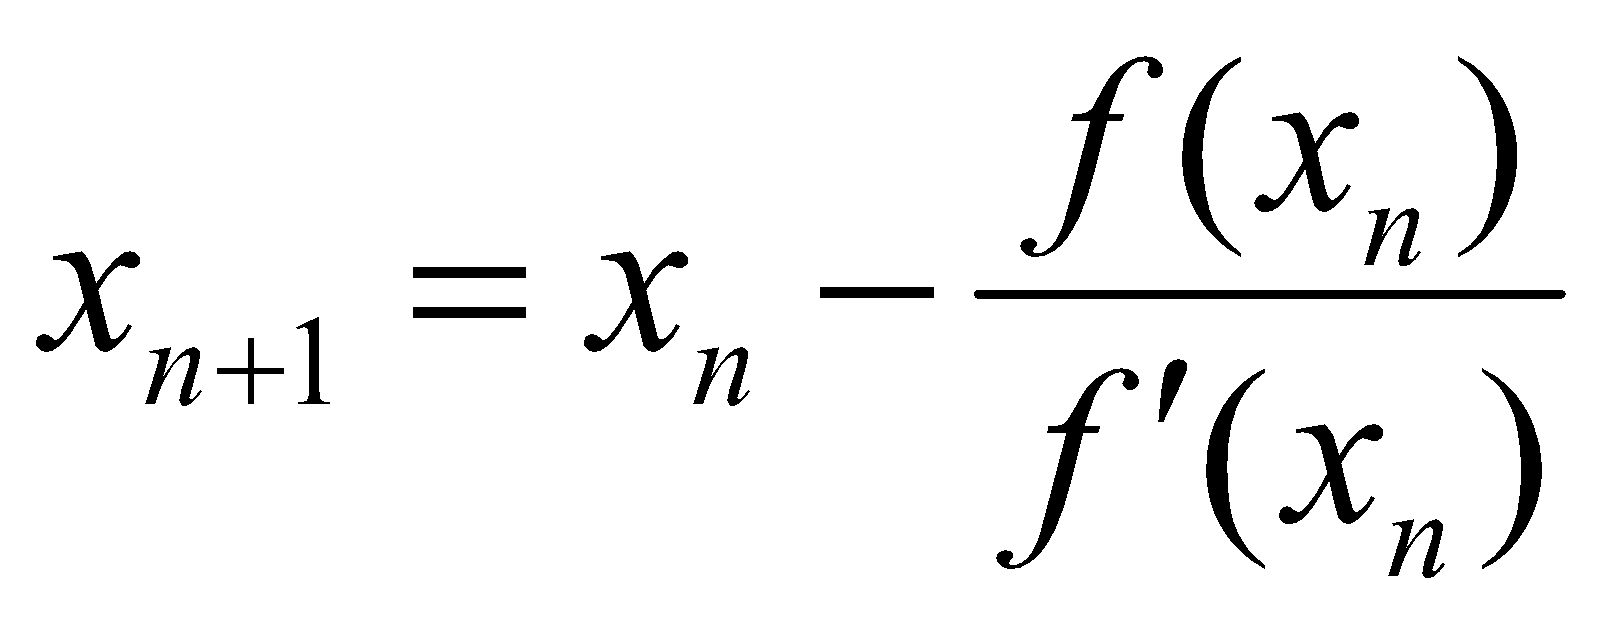 This coursework is about finding the roots of equations by